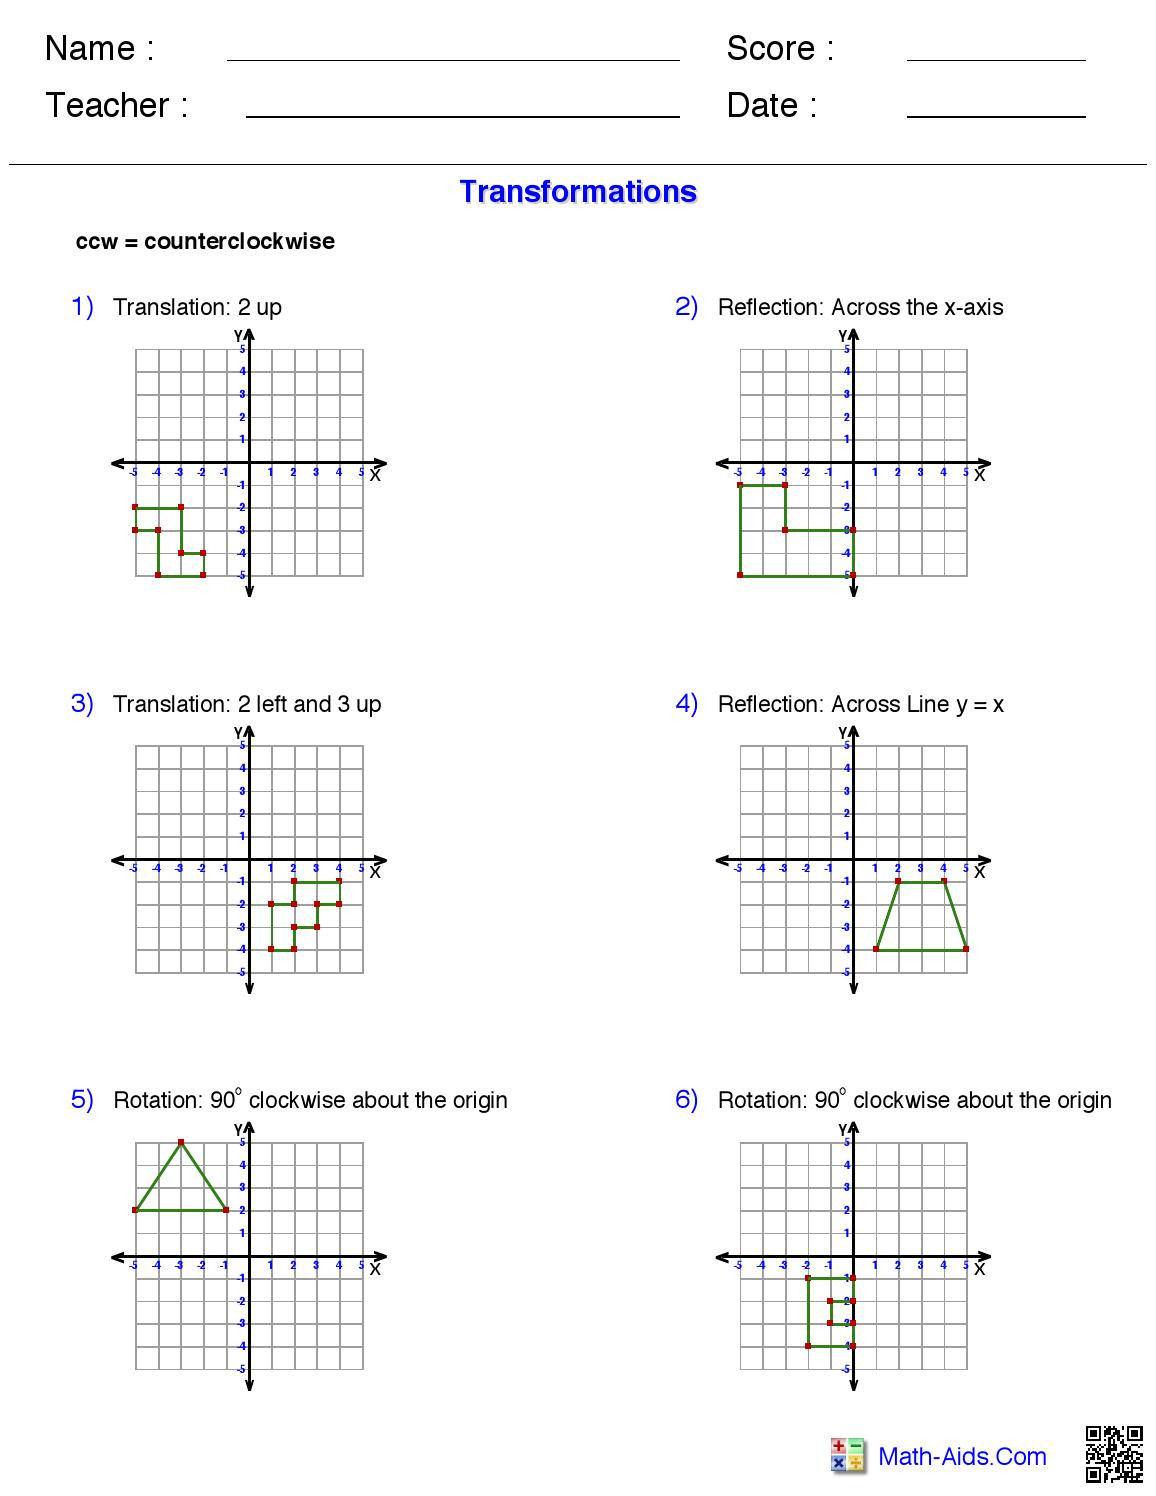 Math Aids Reflections Transformations Work Sheet From Math Aids by Morgan Aue